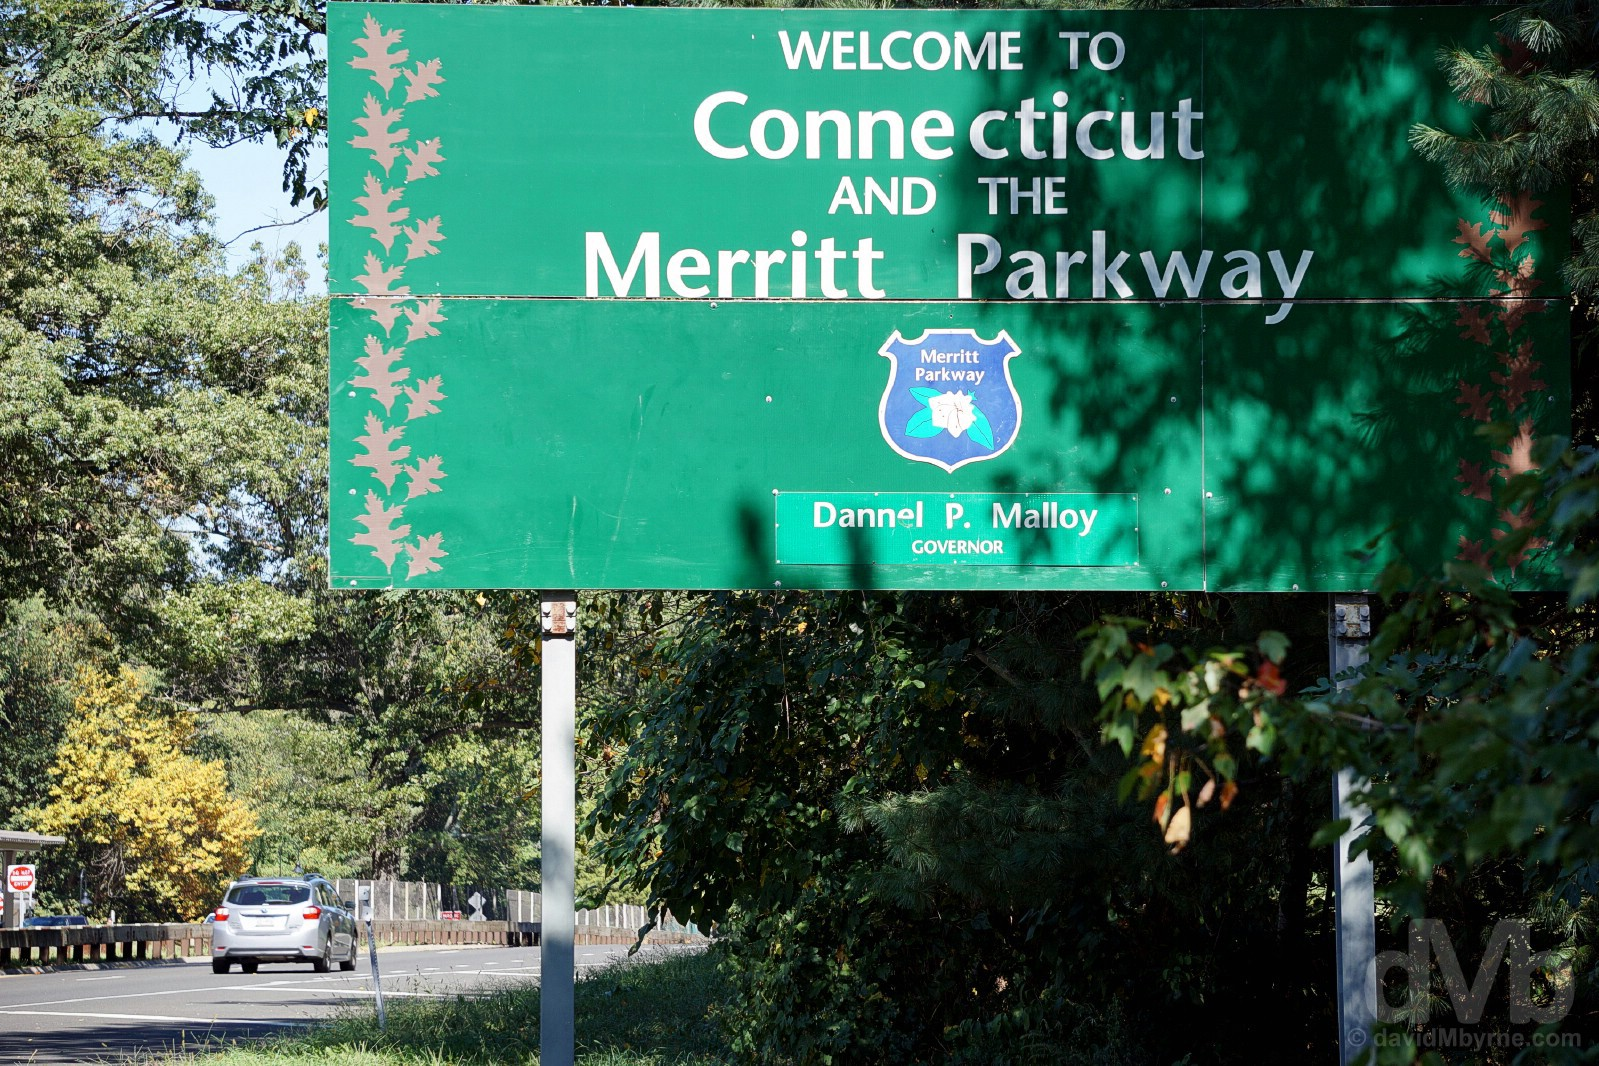 The entrance to the Merritt Parkway on the New York/Connecticut state line. September 28 2017.